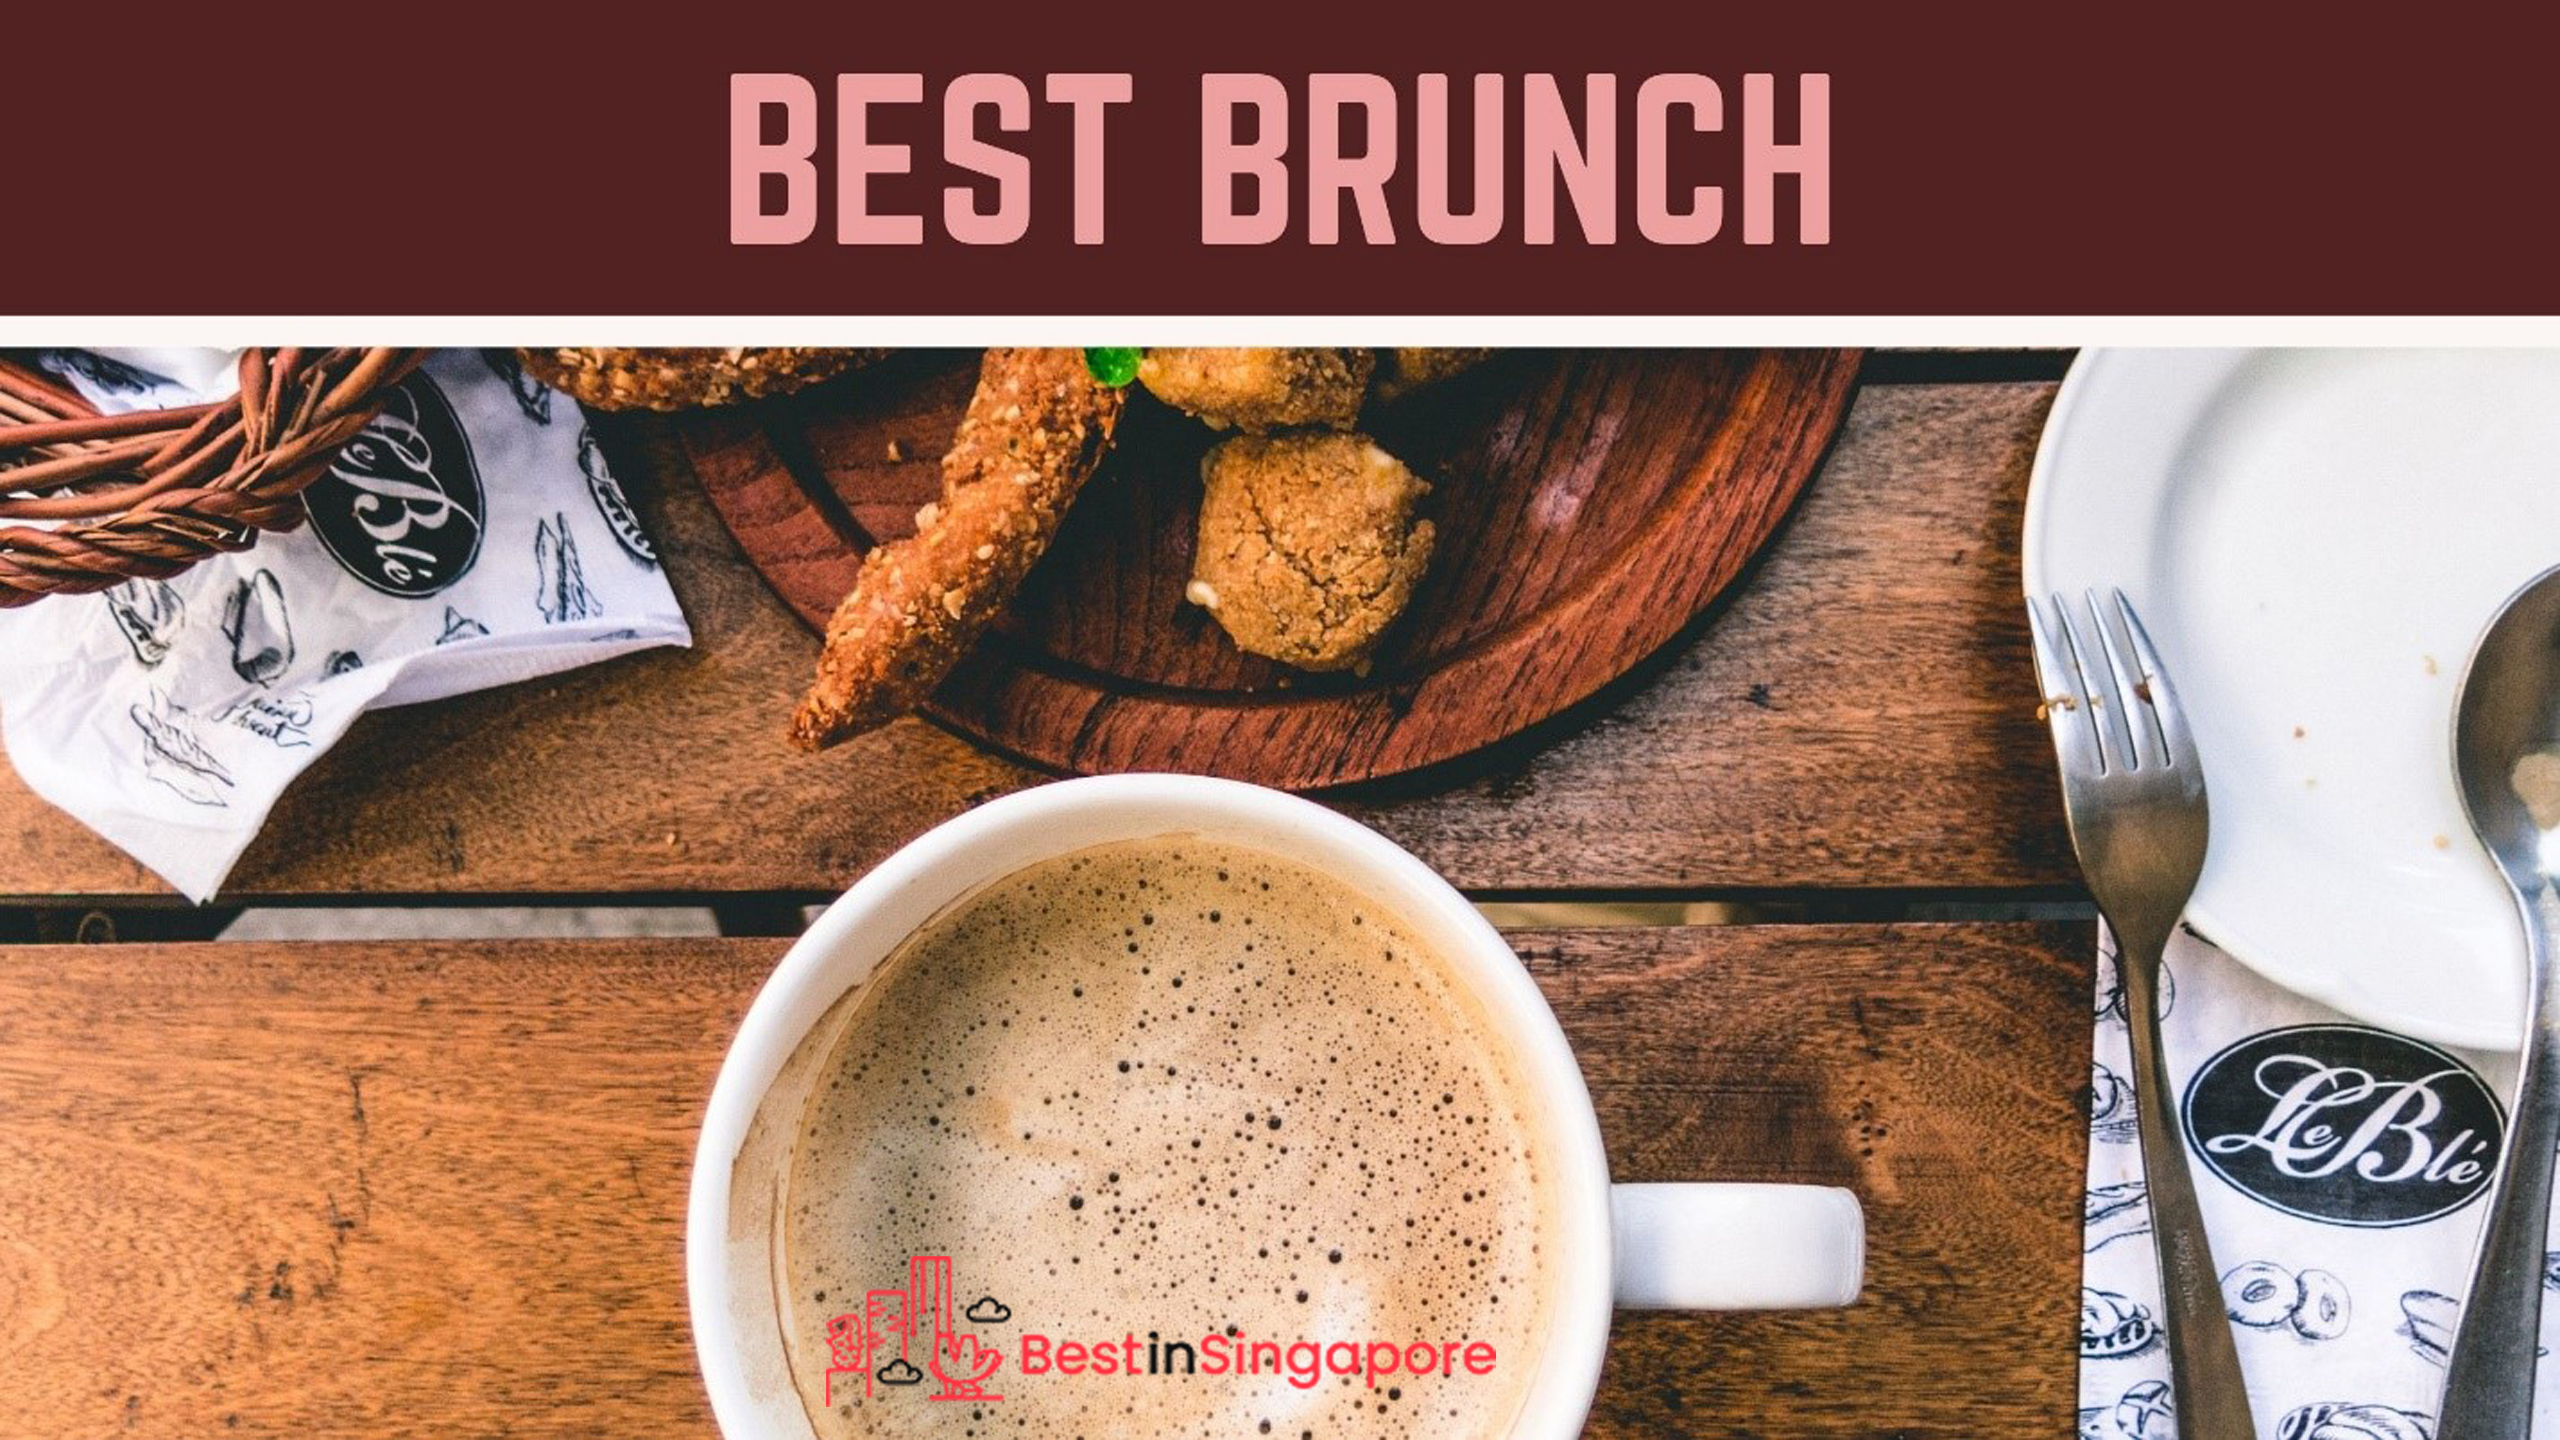 BEST BRUNCH SINGAPORE